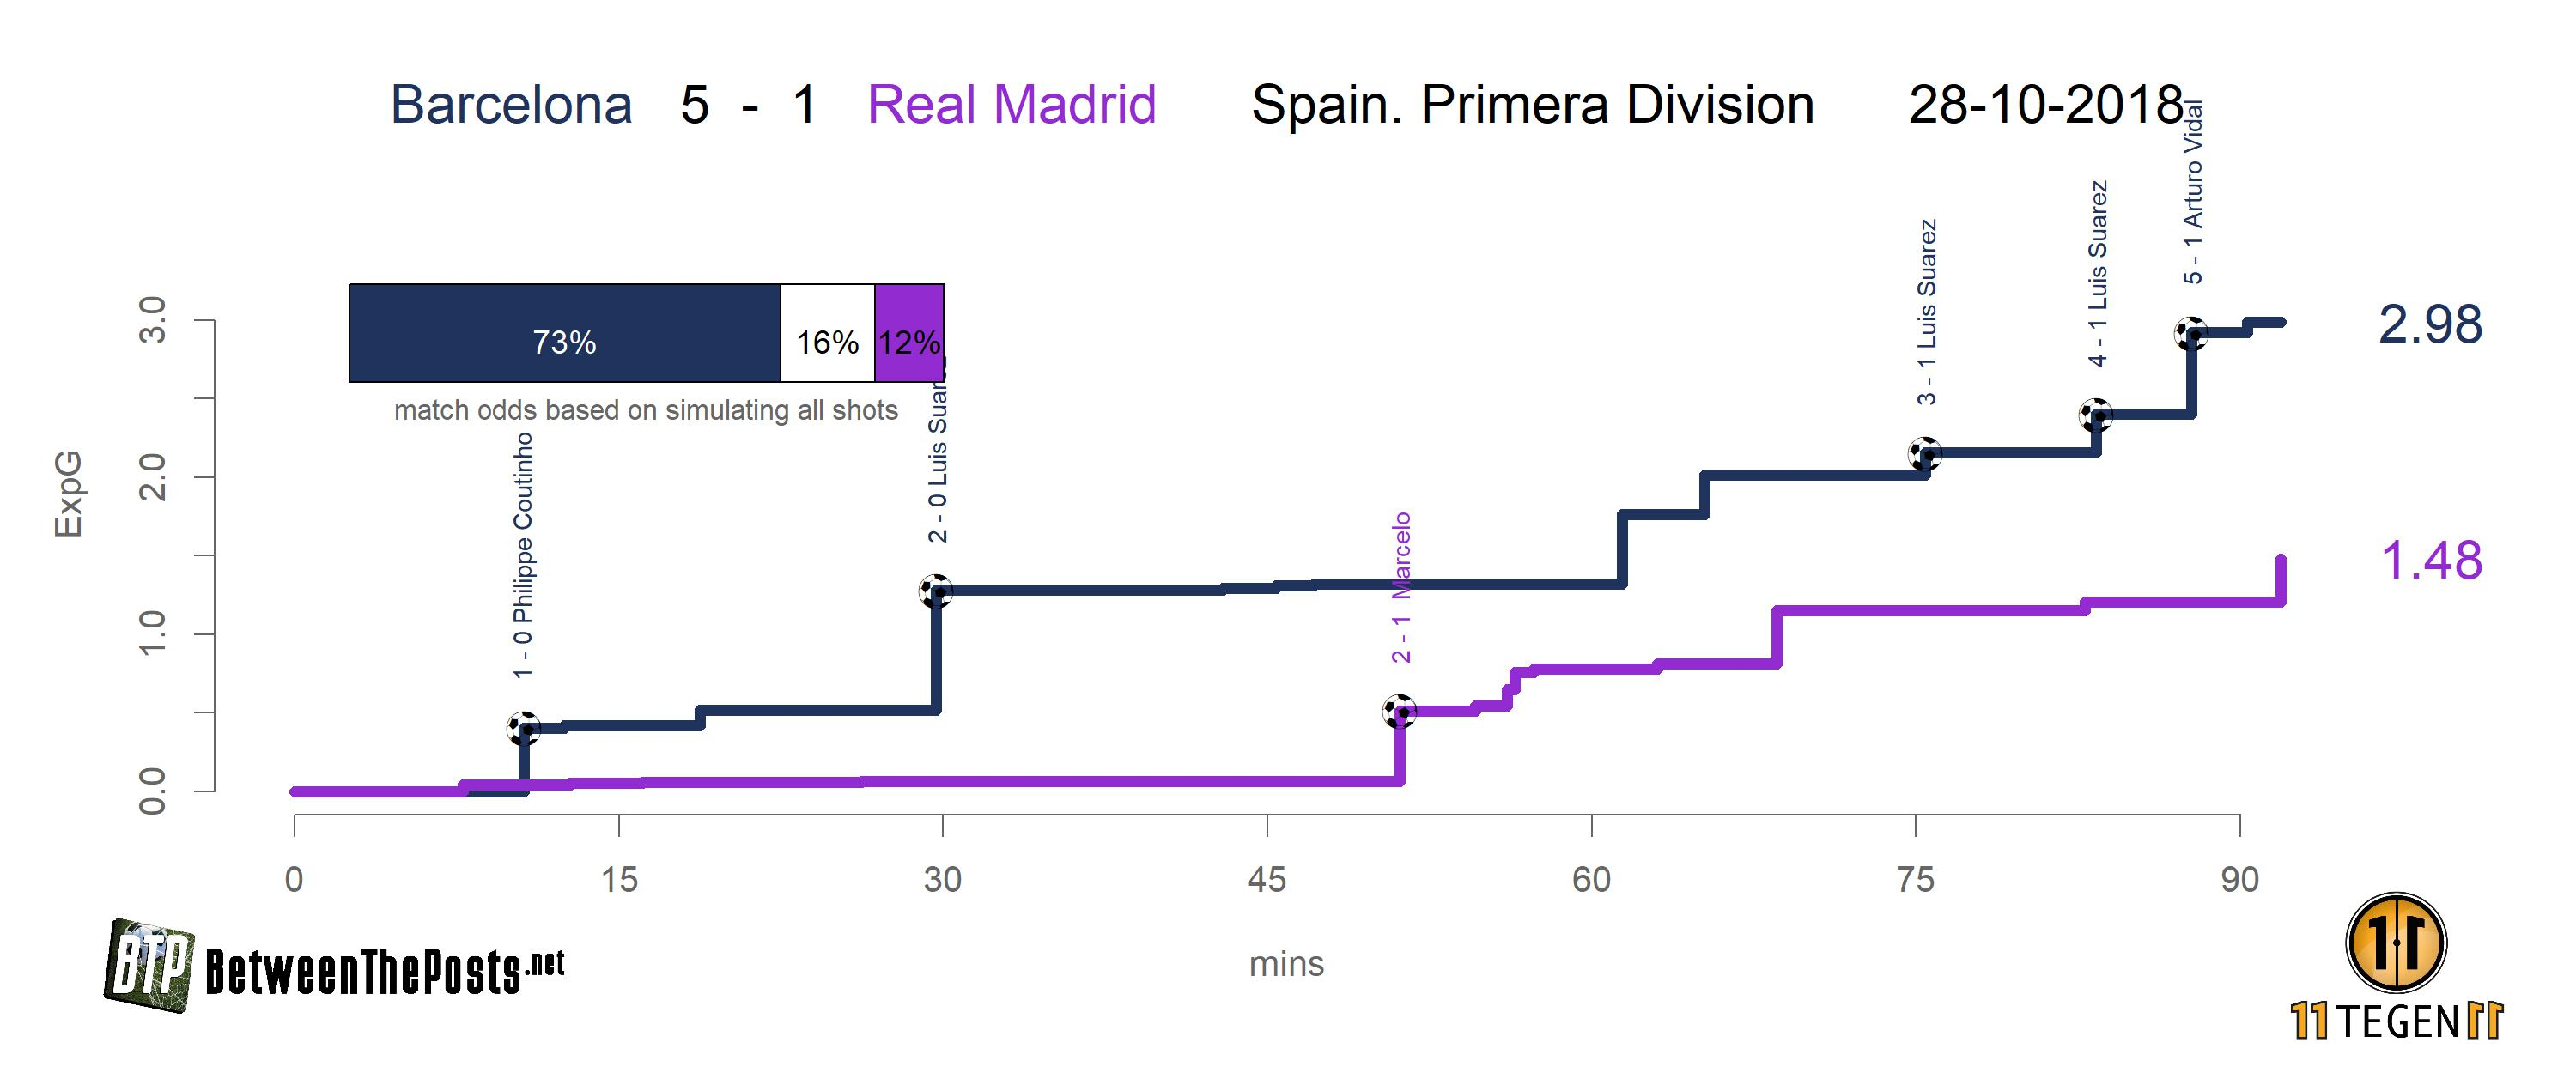 Expected goals plots for Barcelona - Real Madrid 5-1